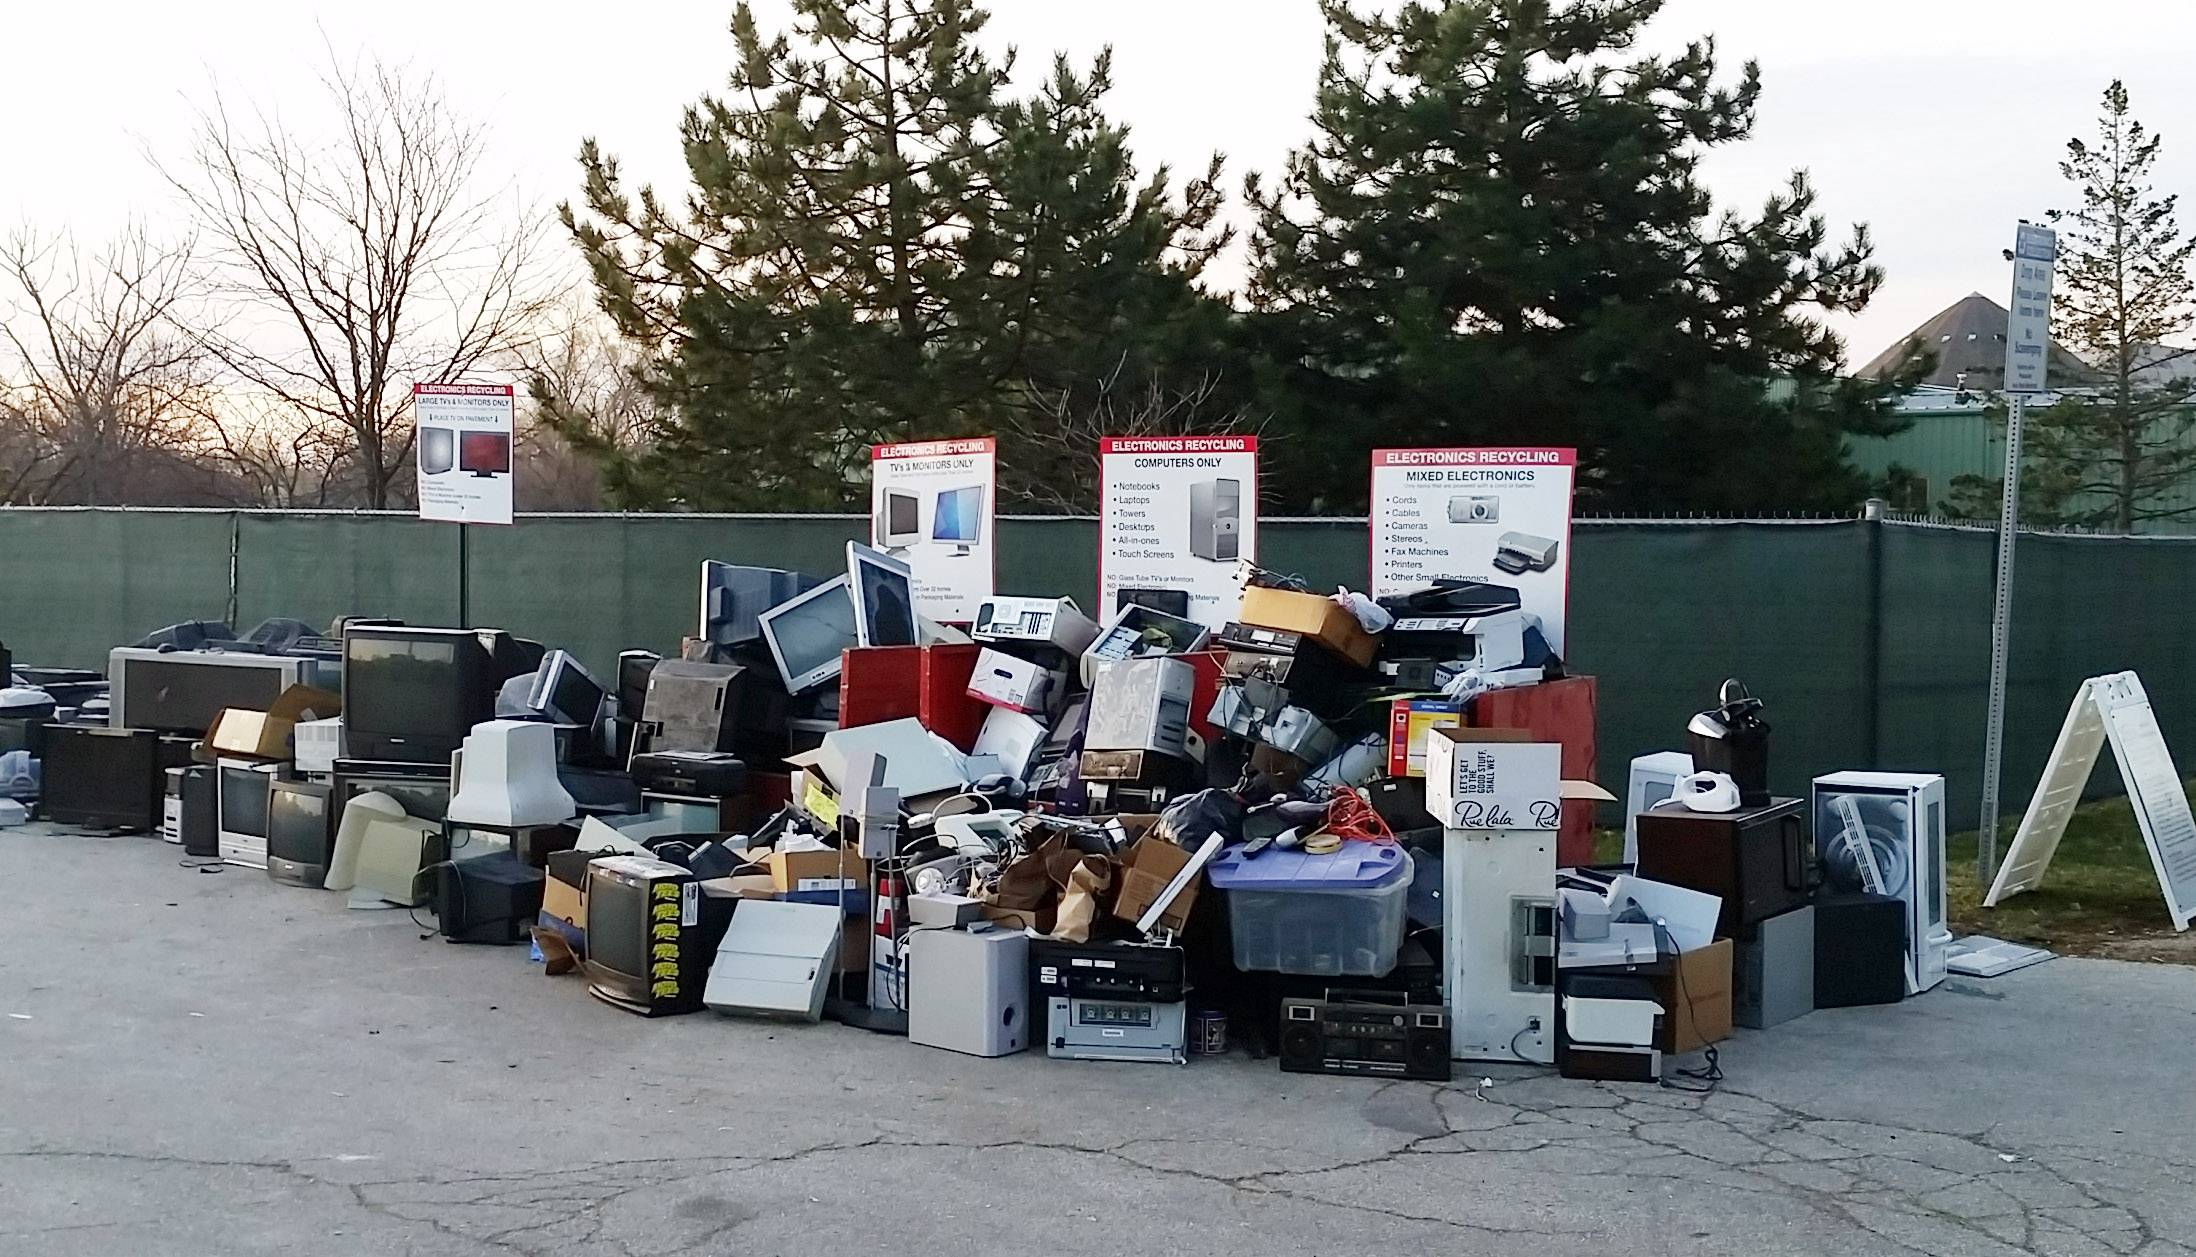 Electronics are piled up before being removed from the electronics collection site in Grayslake